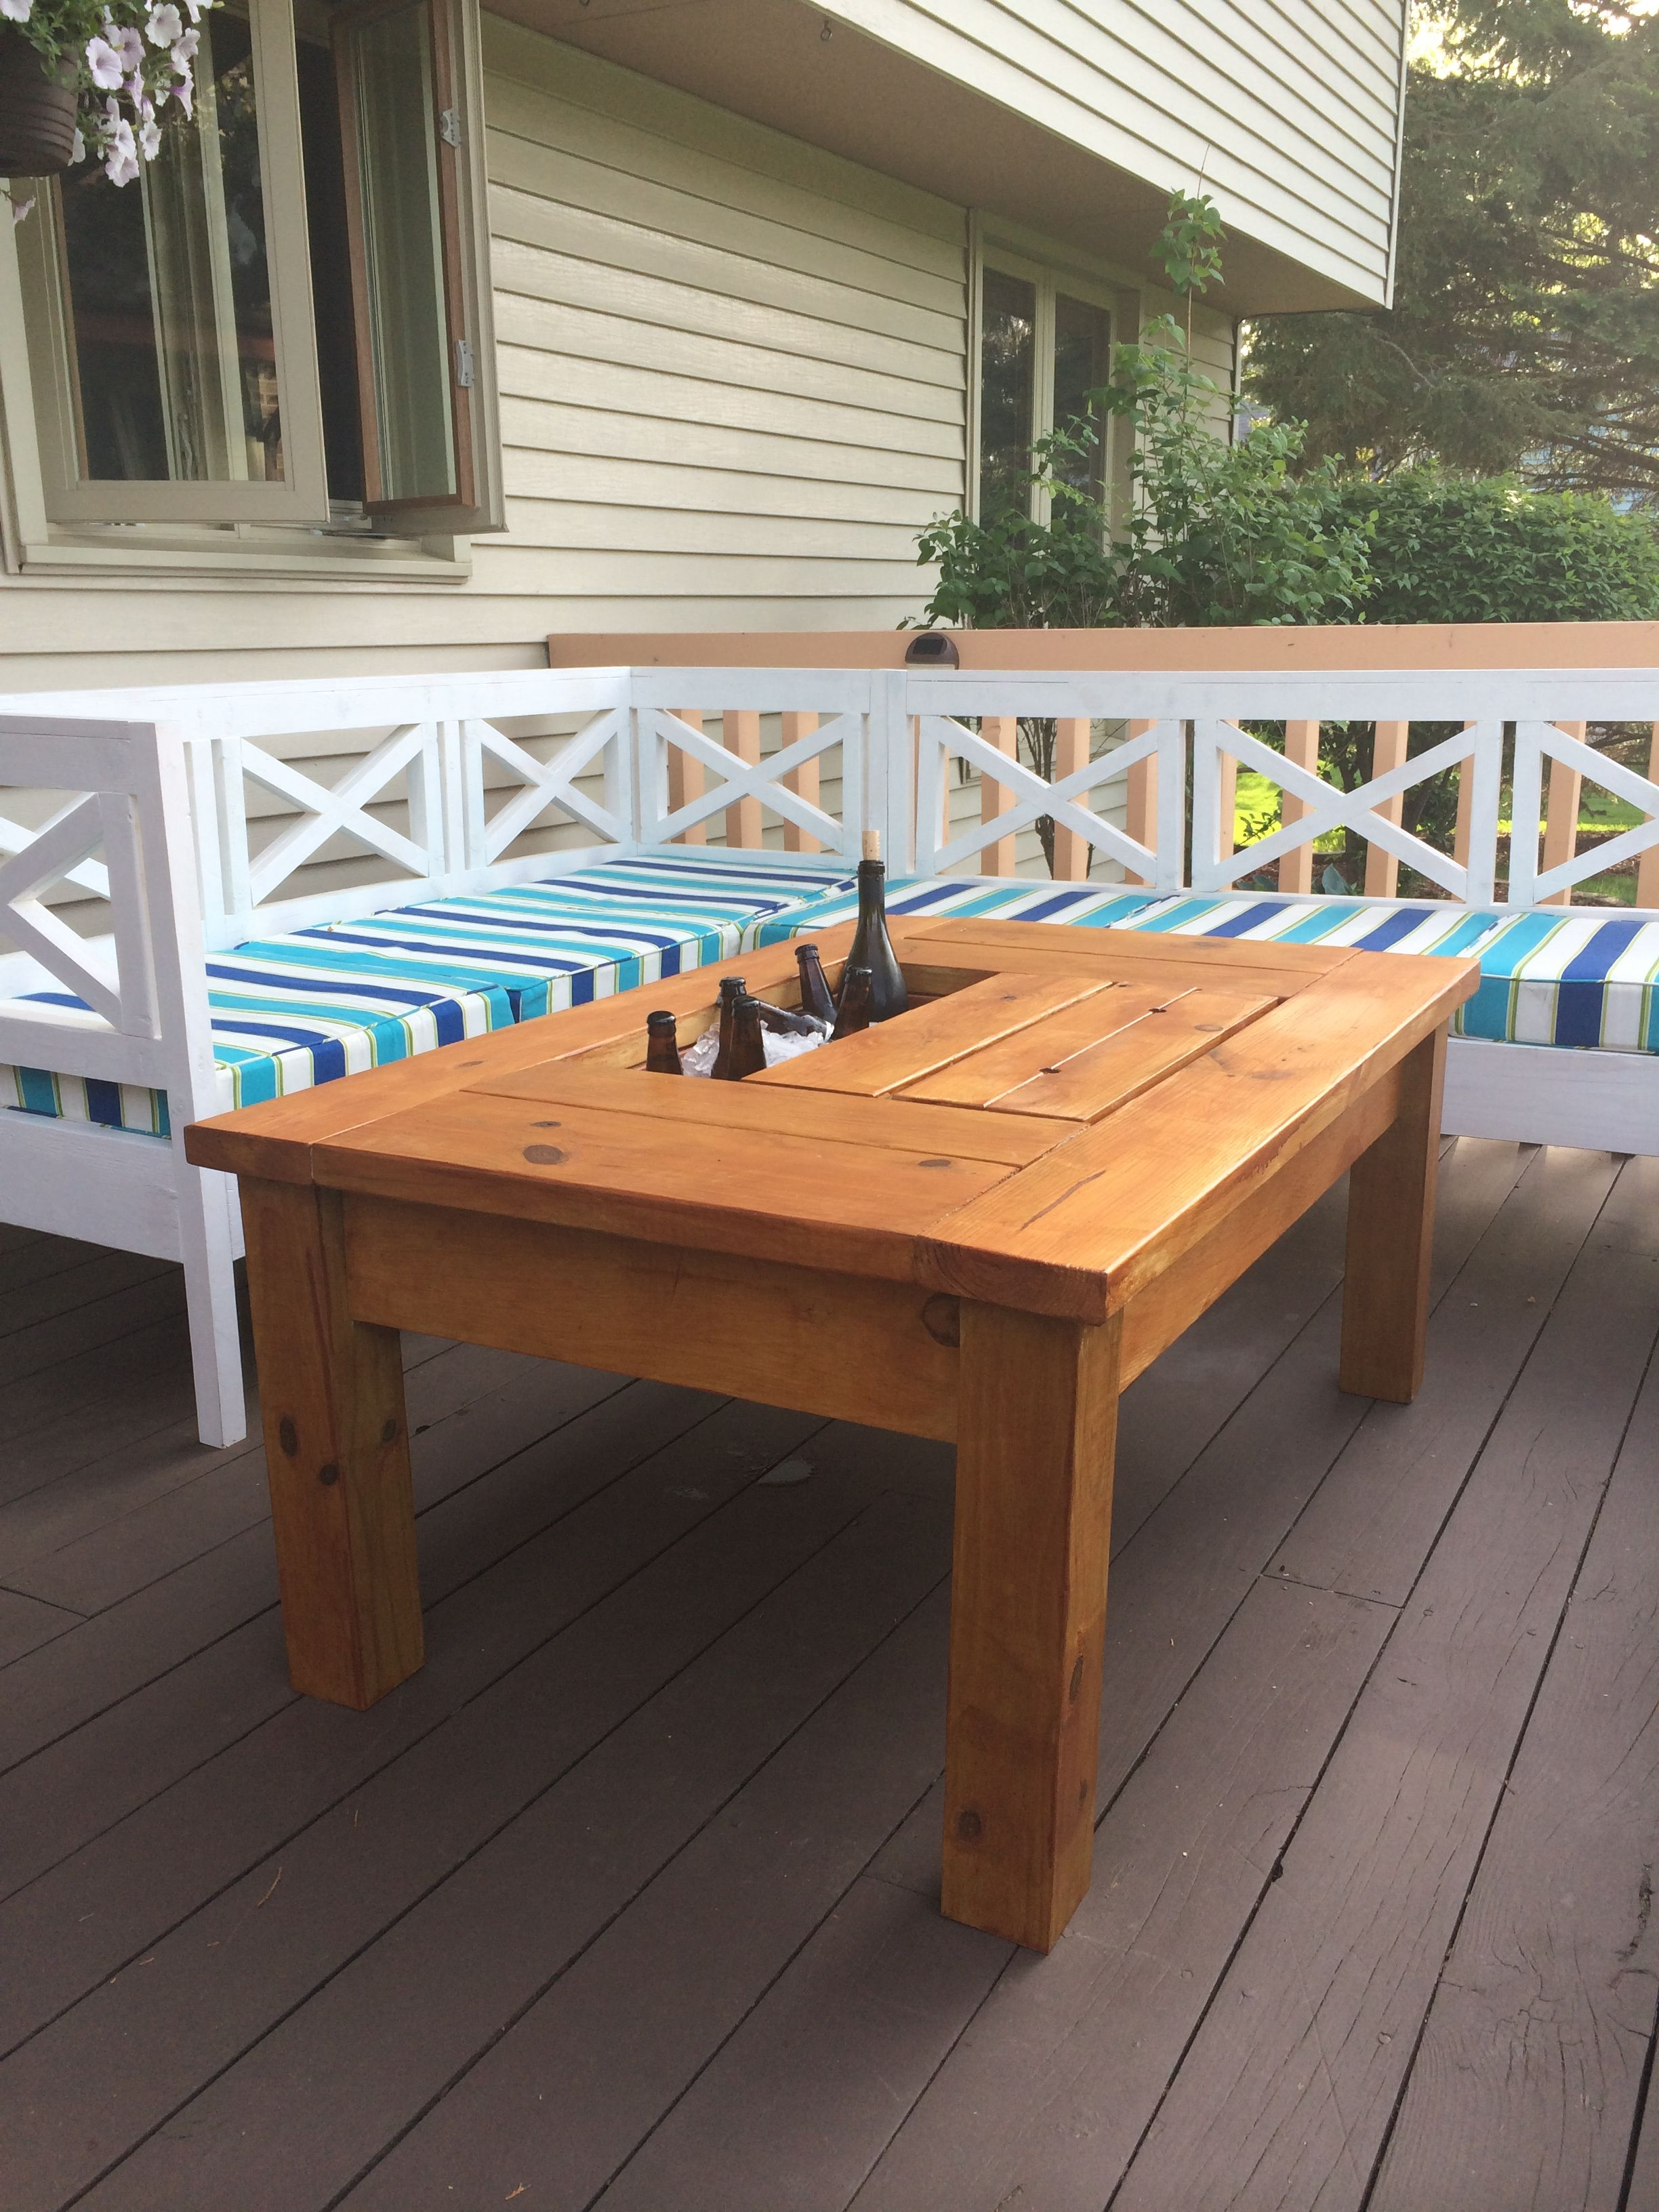 Patio Table With Built In Beer/Wine Coolers | Do It Yourself Home Projects  From Ana White